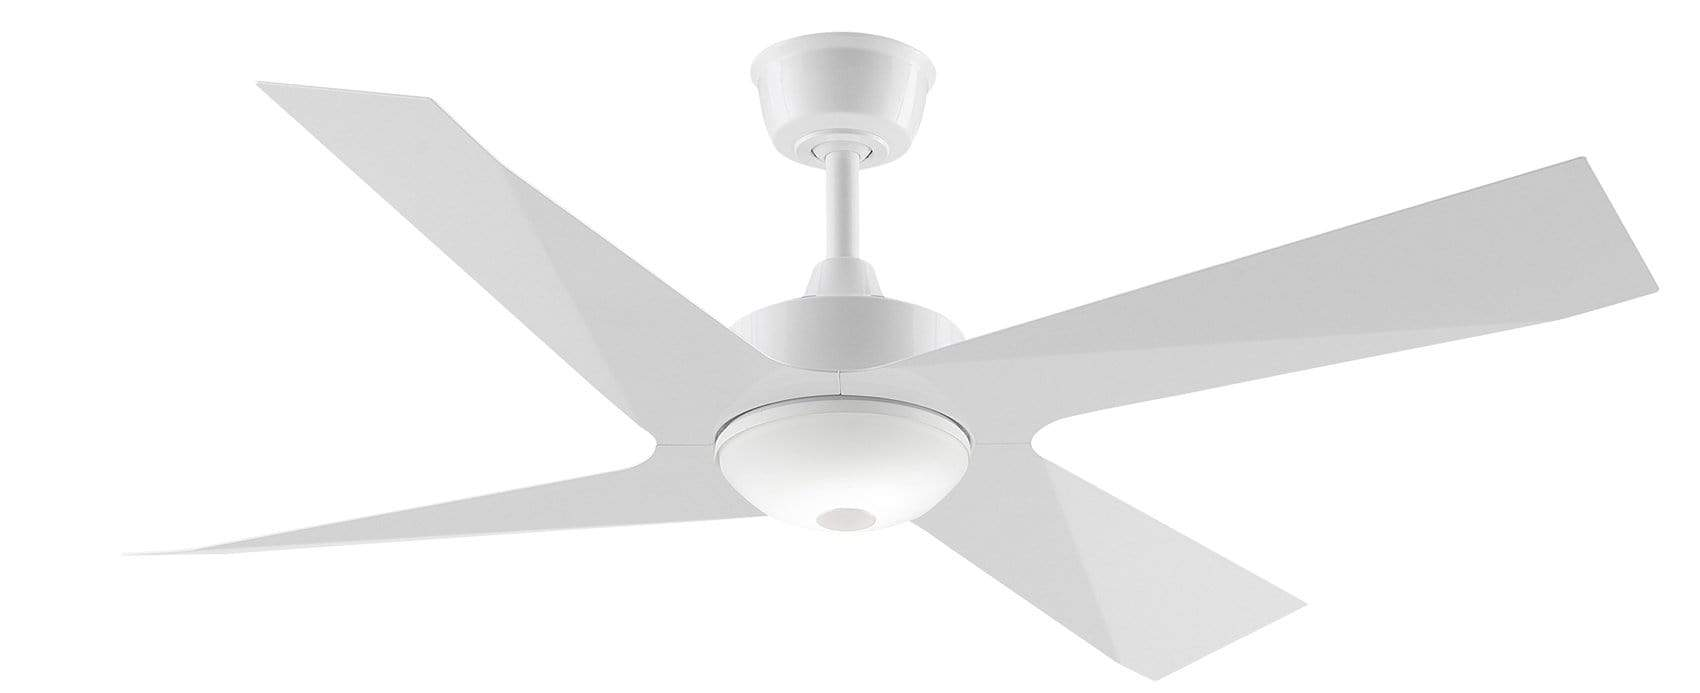 Outdoor Fans Modn-4 Ceiling Fan - White